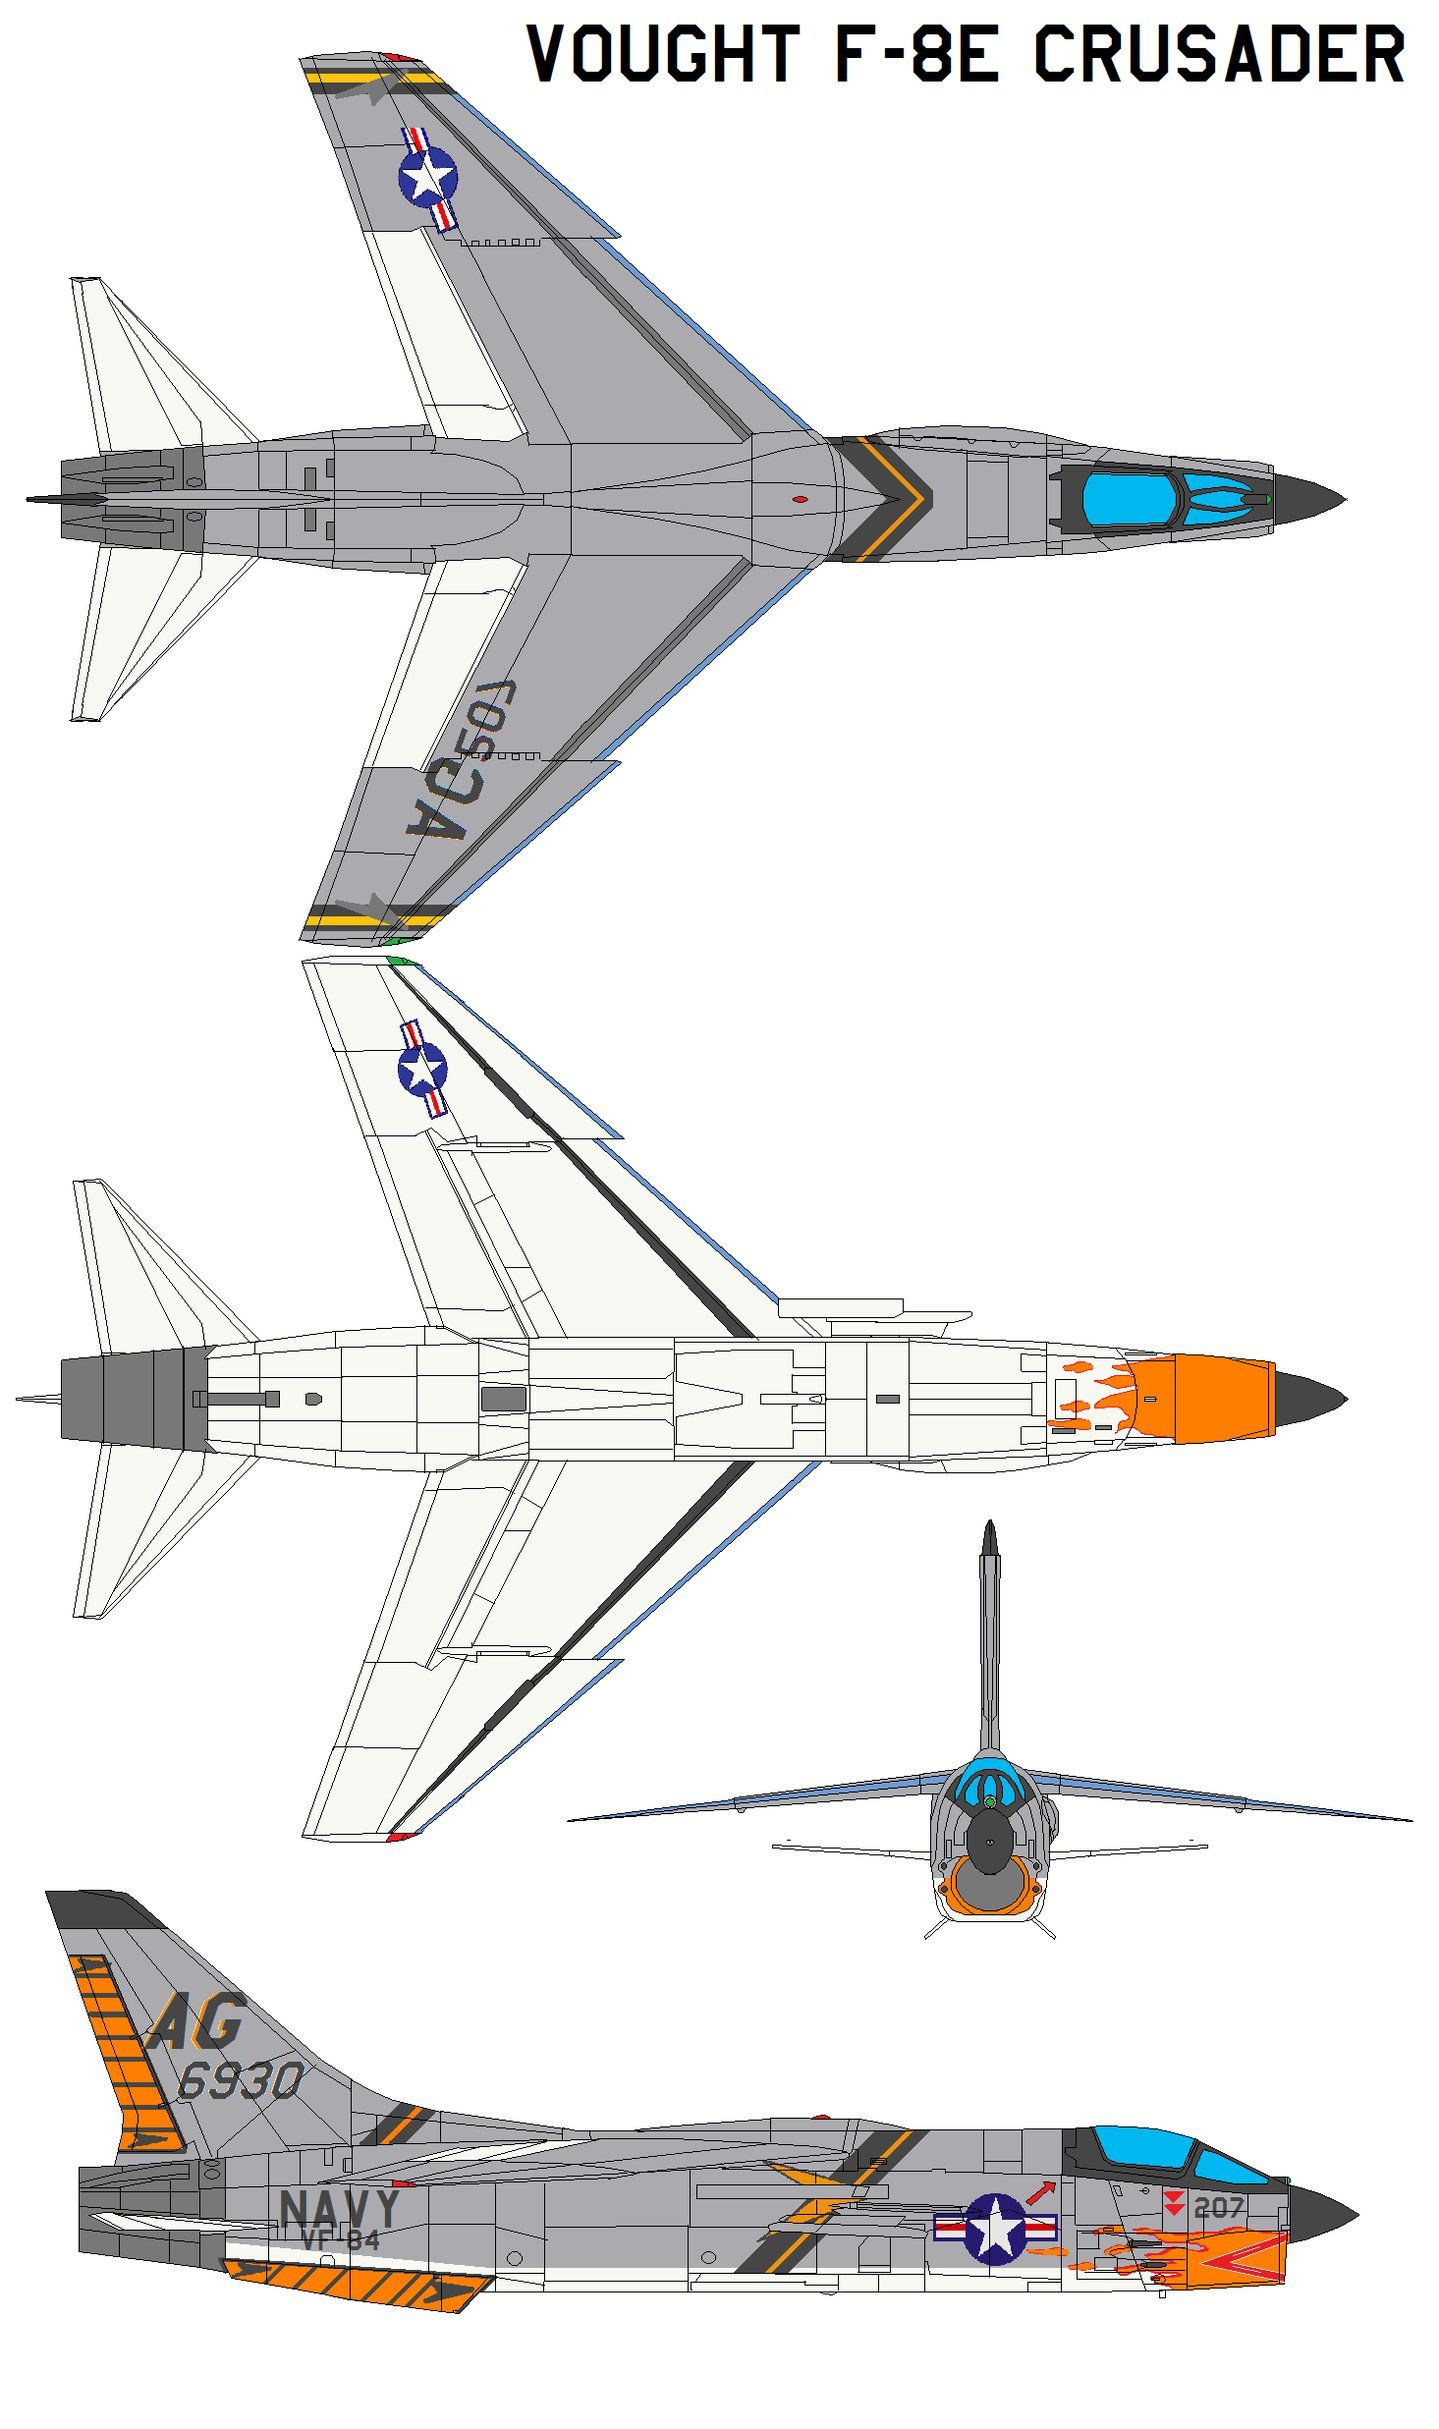 Vought F-8 Crusader : vought, crusader, Vought, Crusader, Military, Aircraft,, Fighter, Aircraft